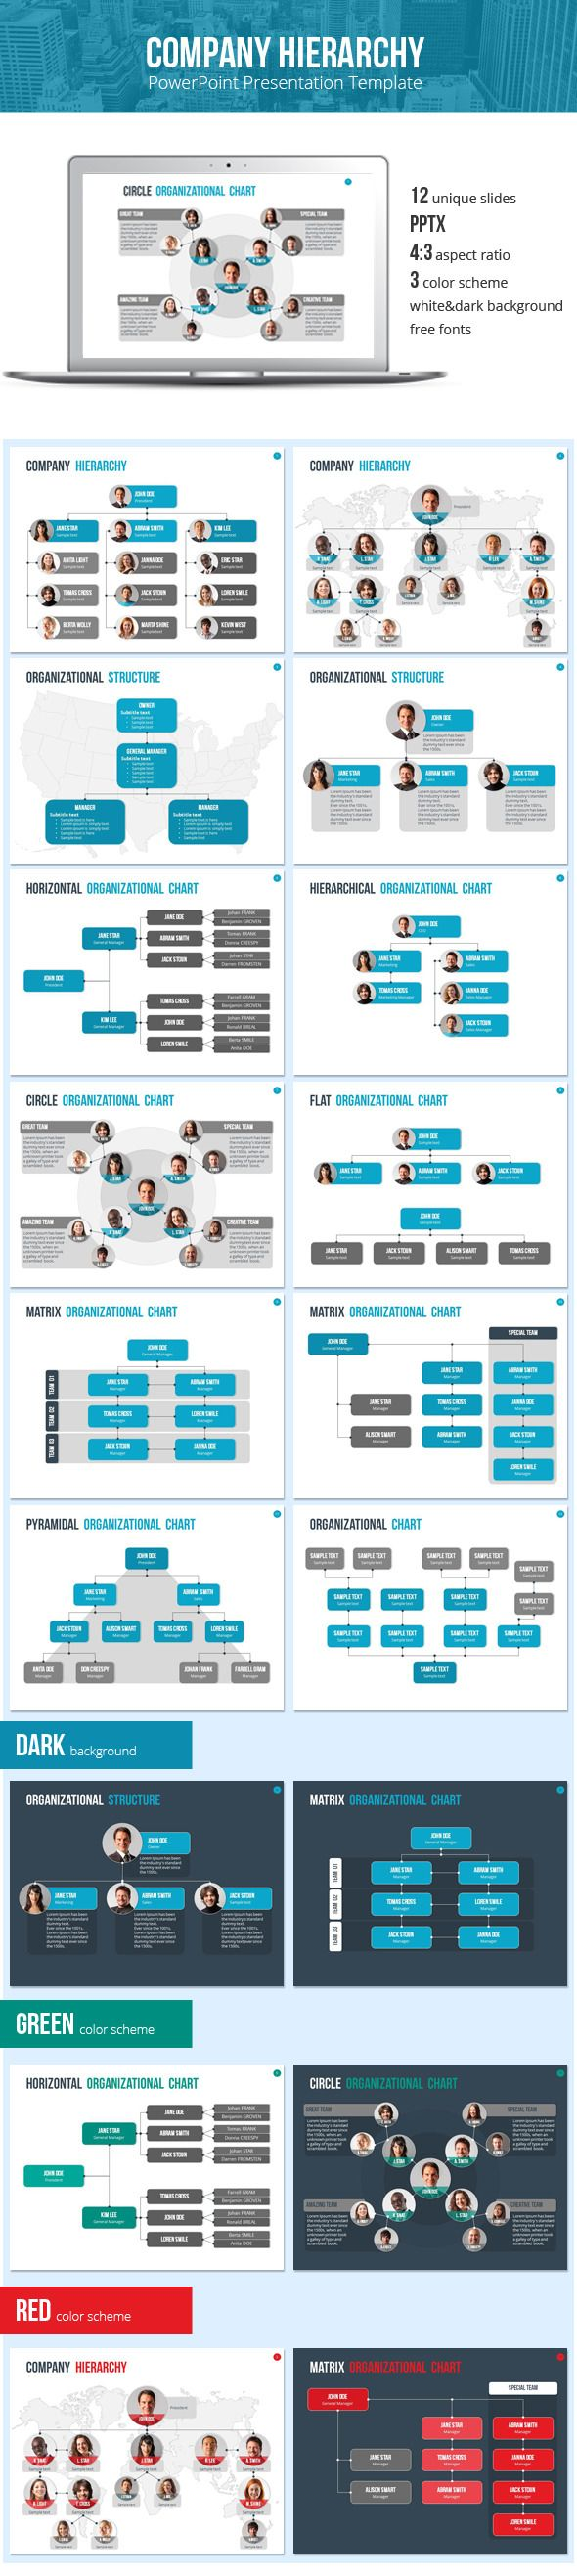 organizational chart and hierarchy template business